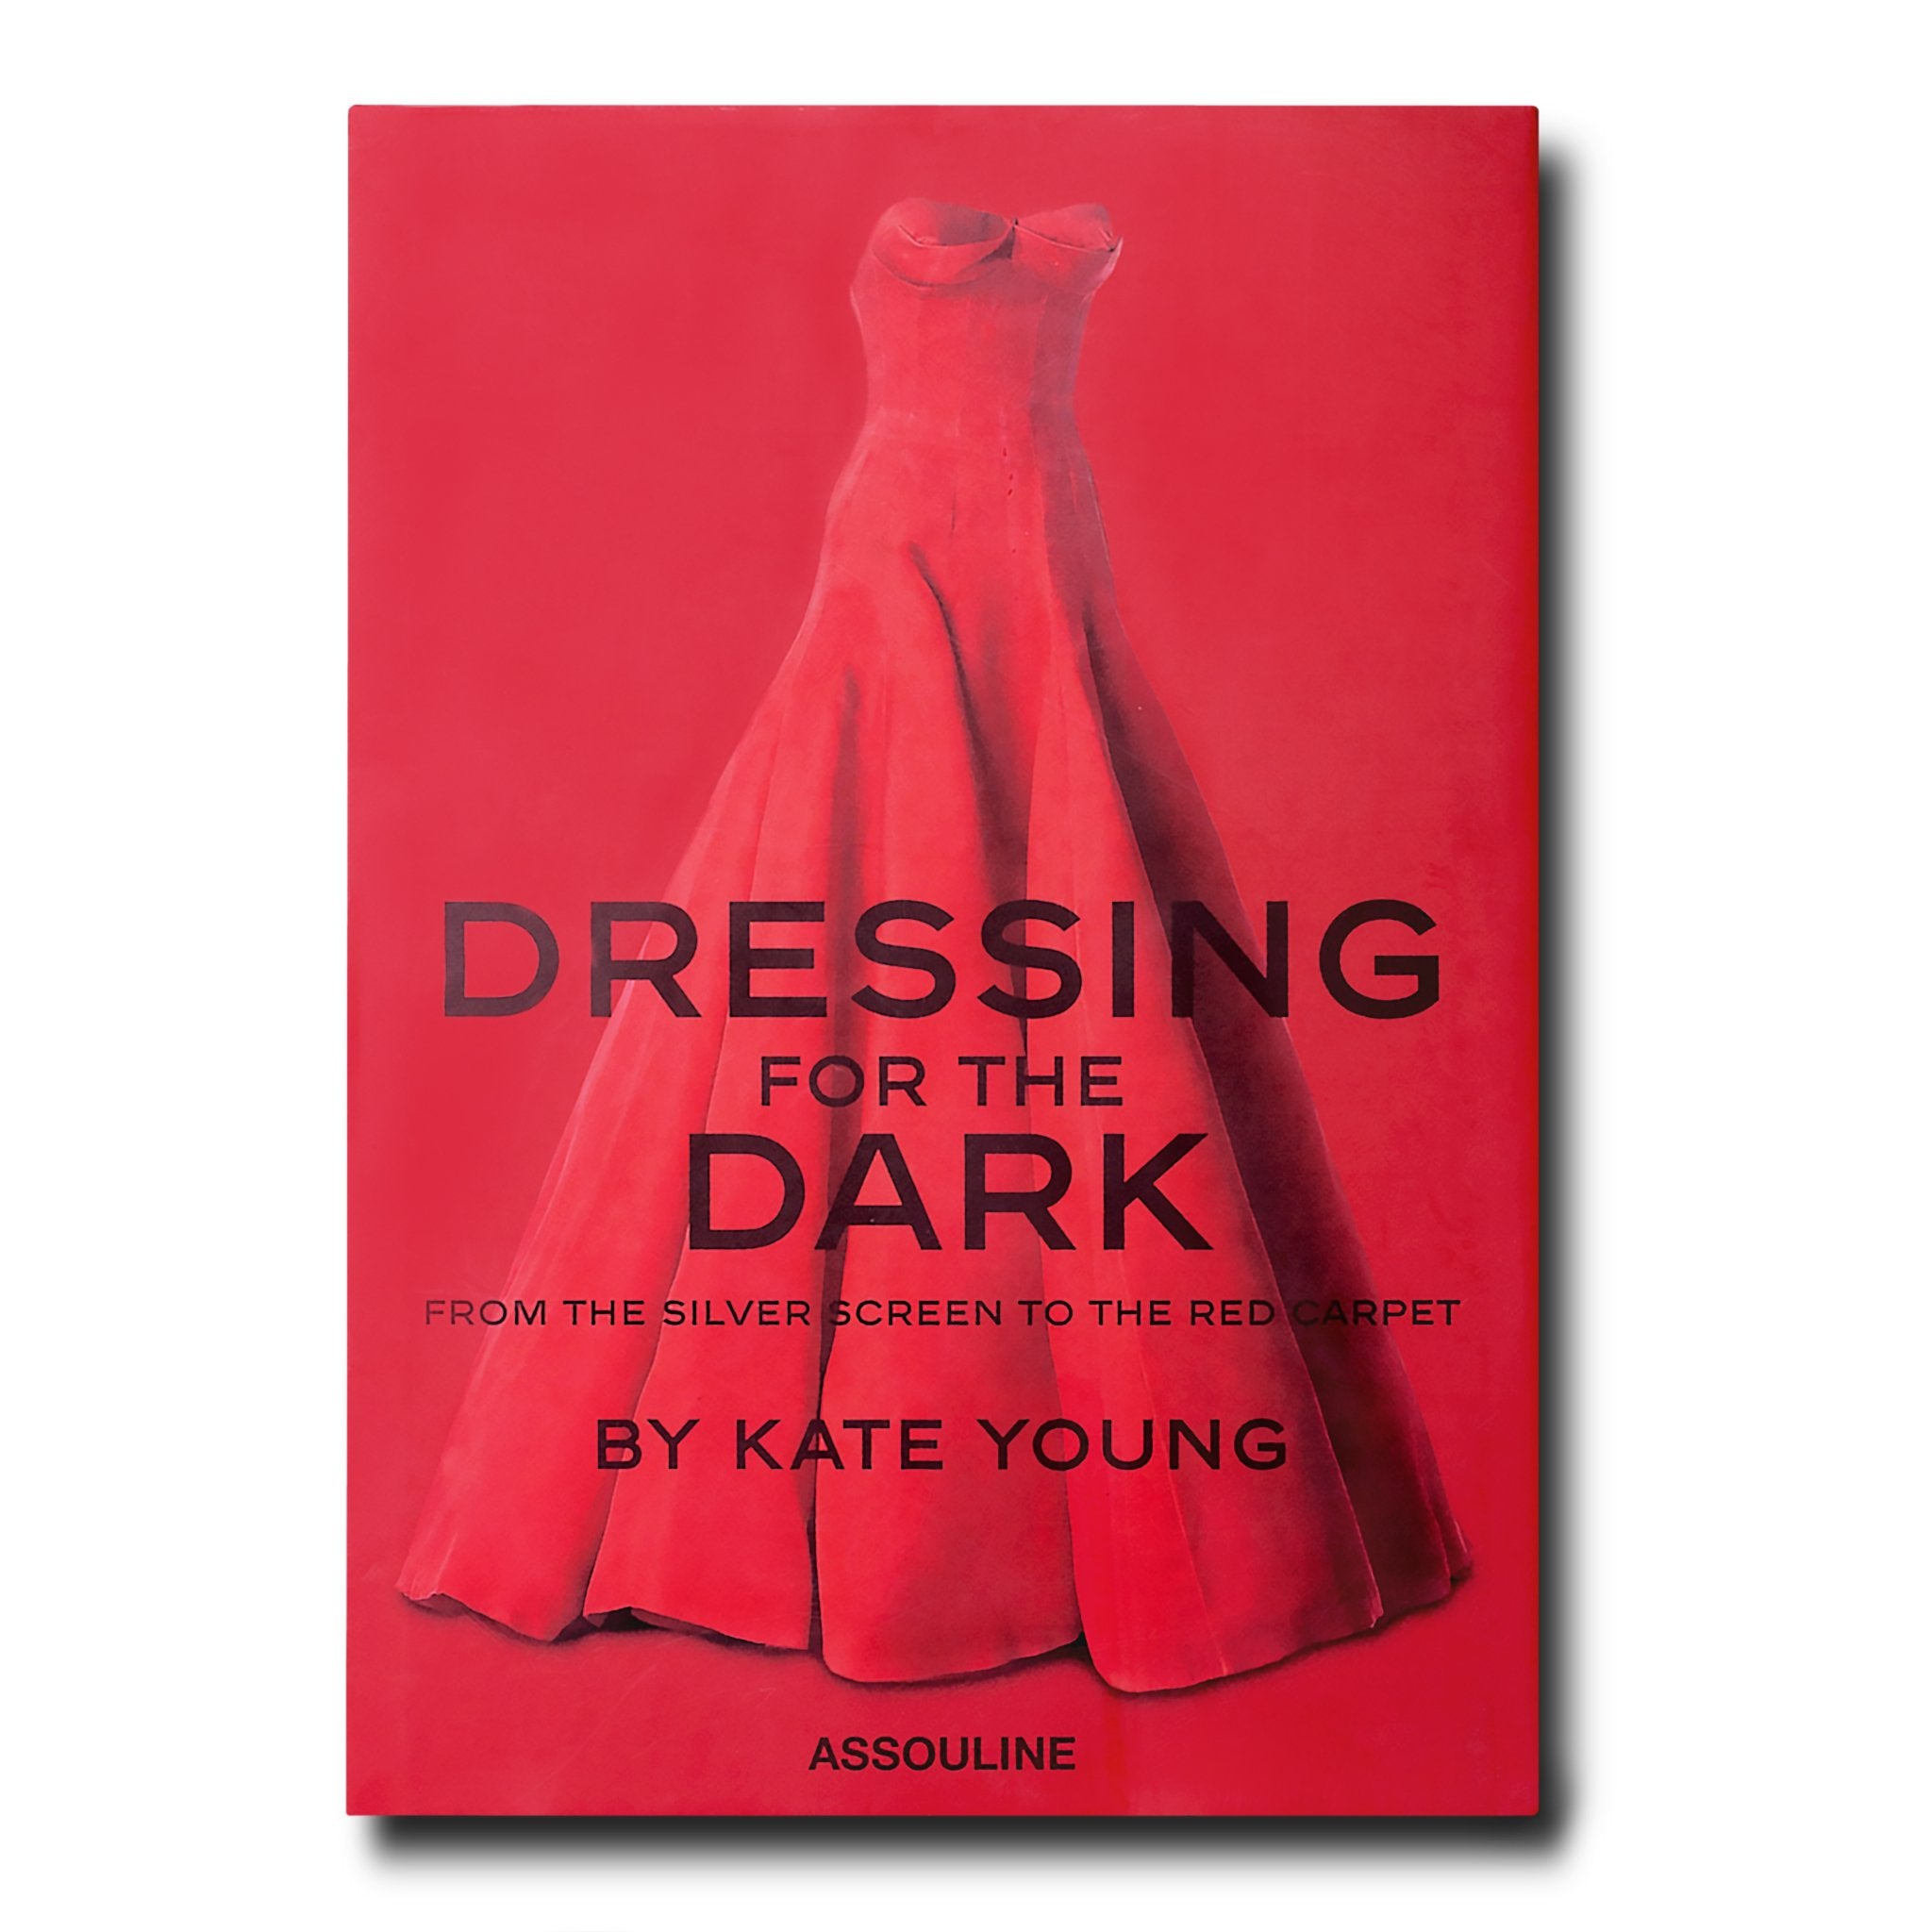 Dressing for the Dark by Kate Young book | ASSOULINE